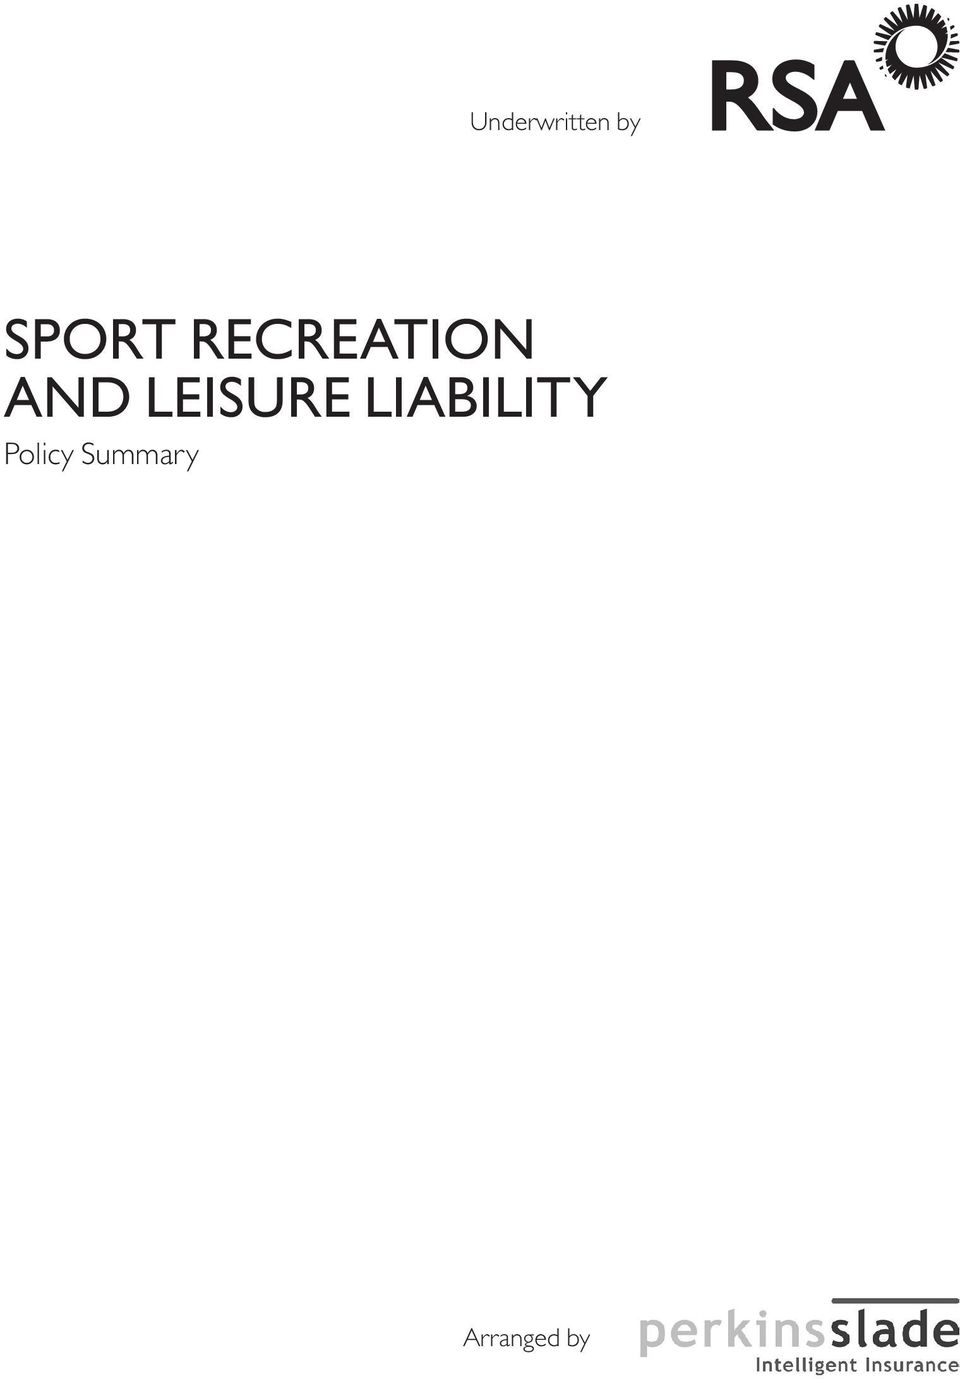 Leisure Liability